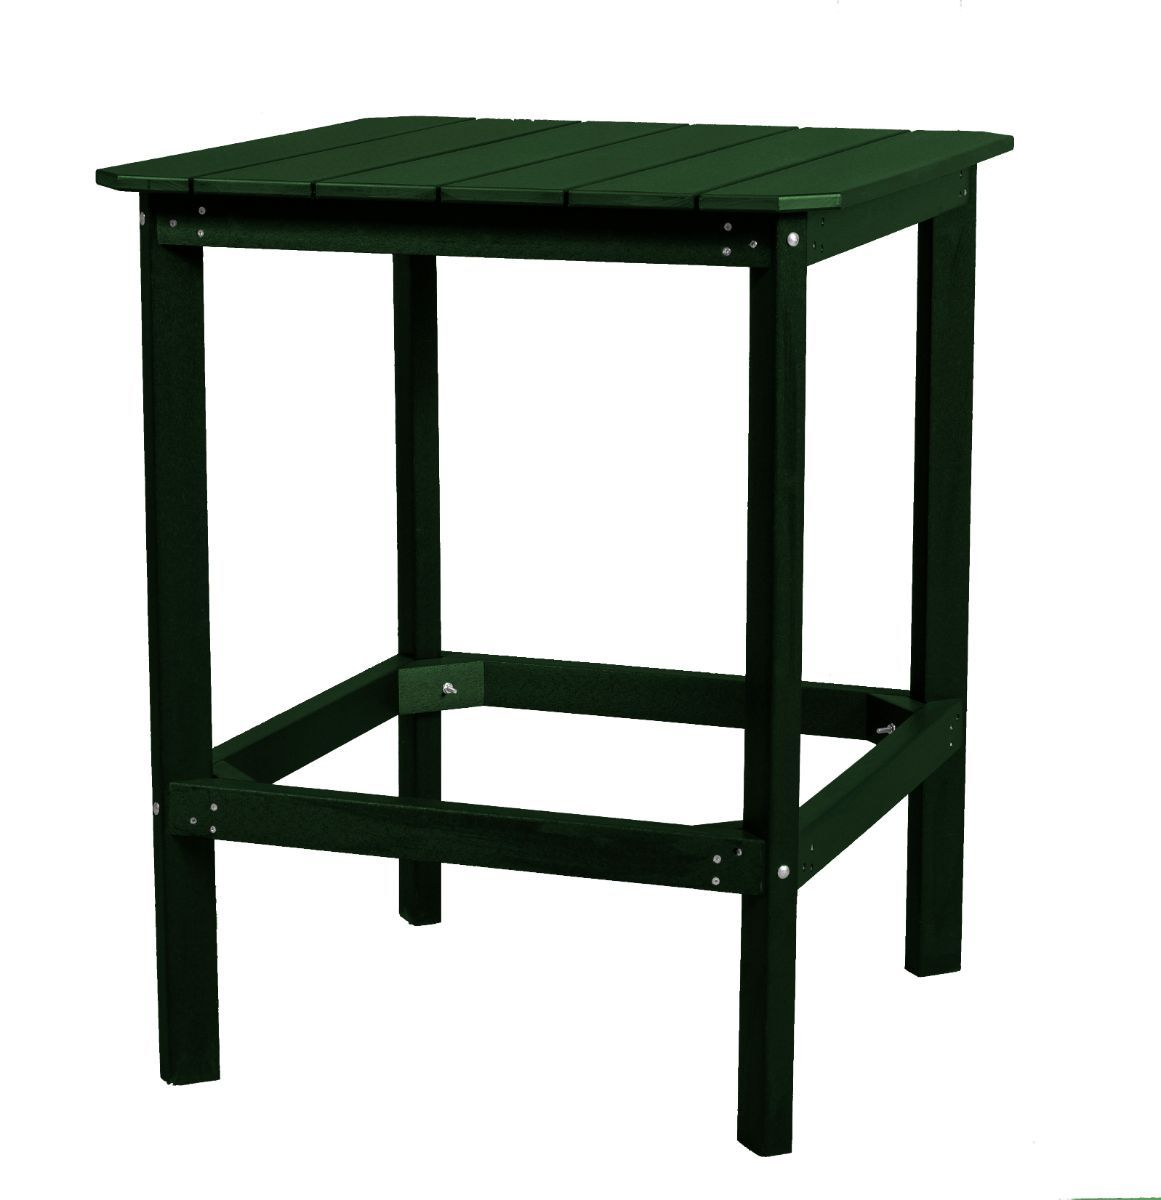 Turf Green Panama High Outdoor Dining Table